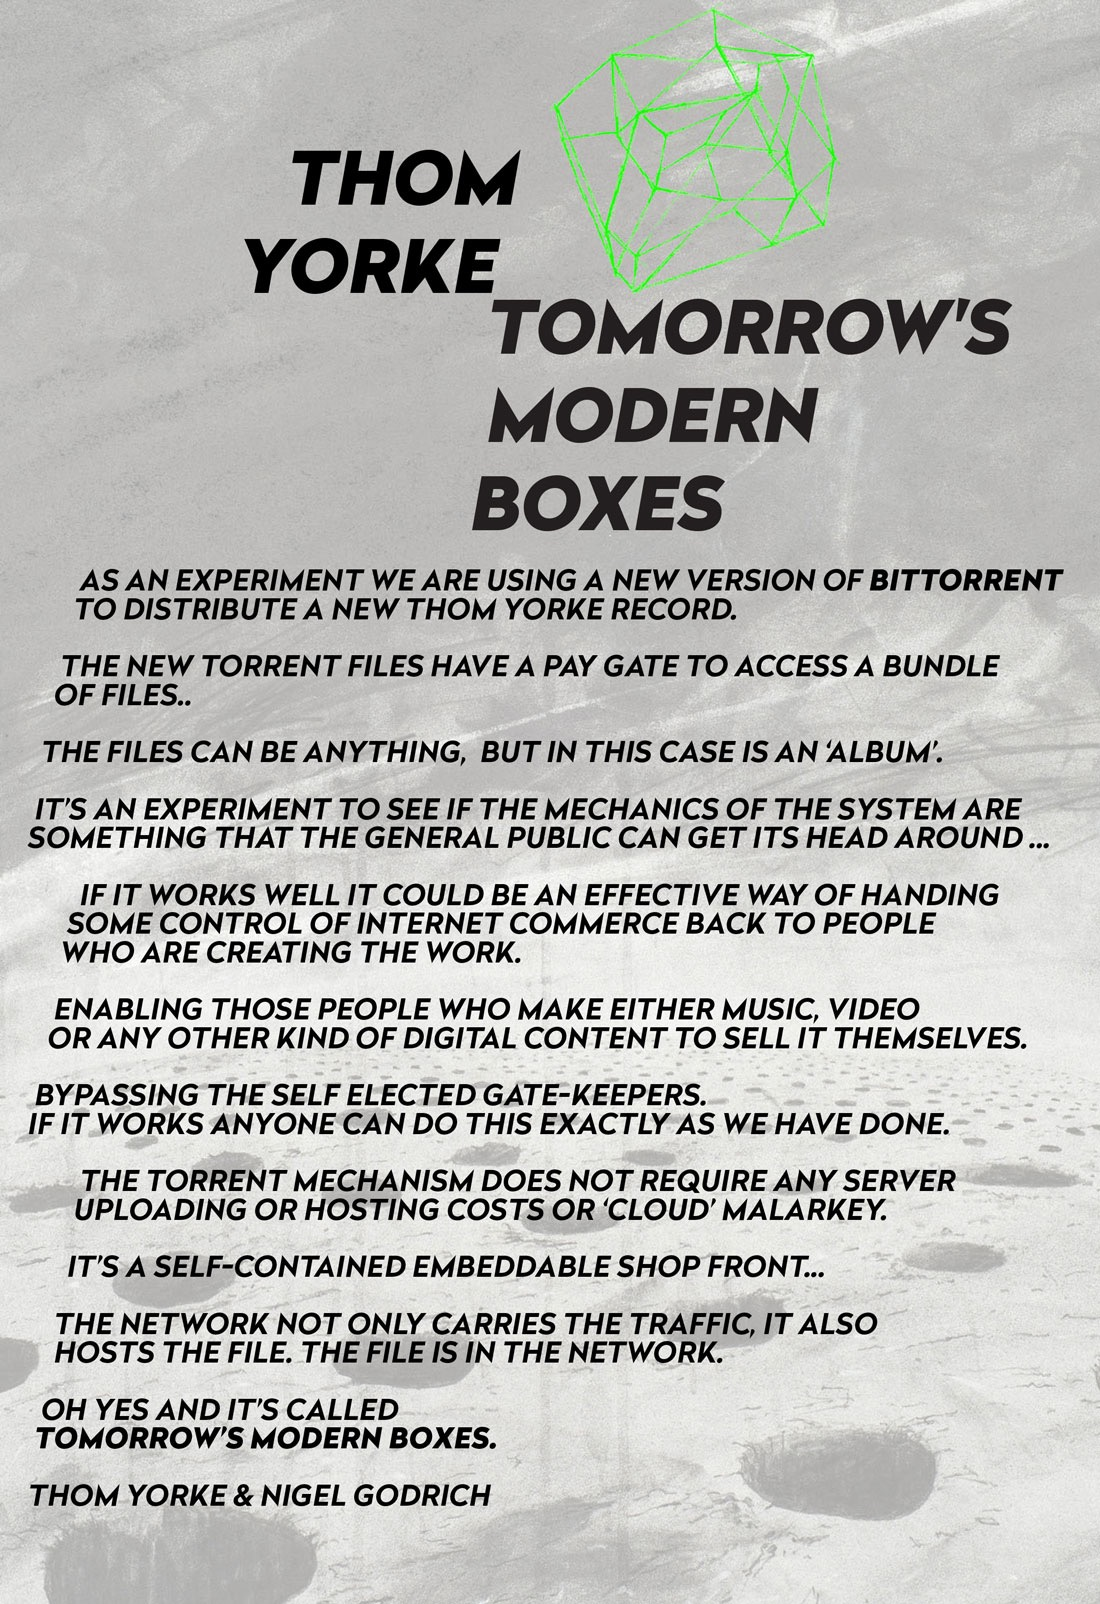 Thom Yorke's Surprise Is Nothing New